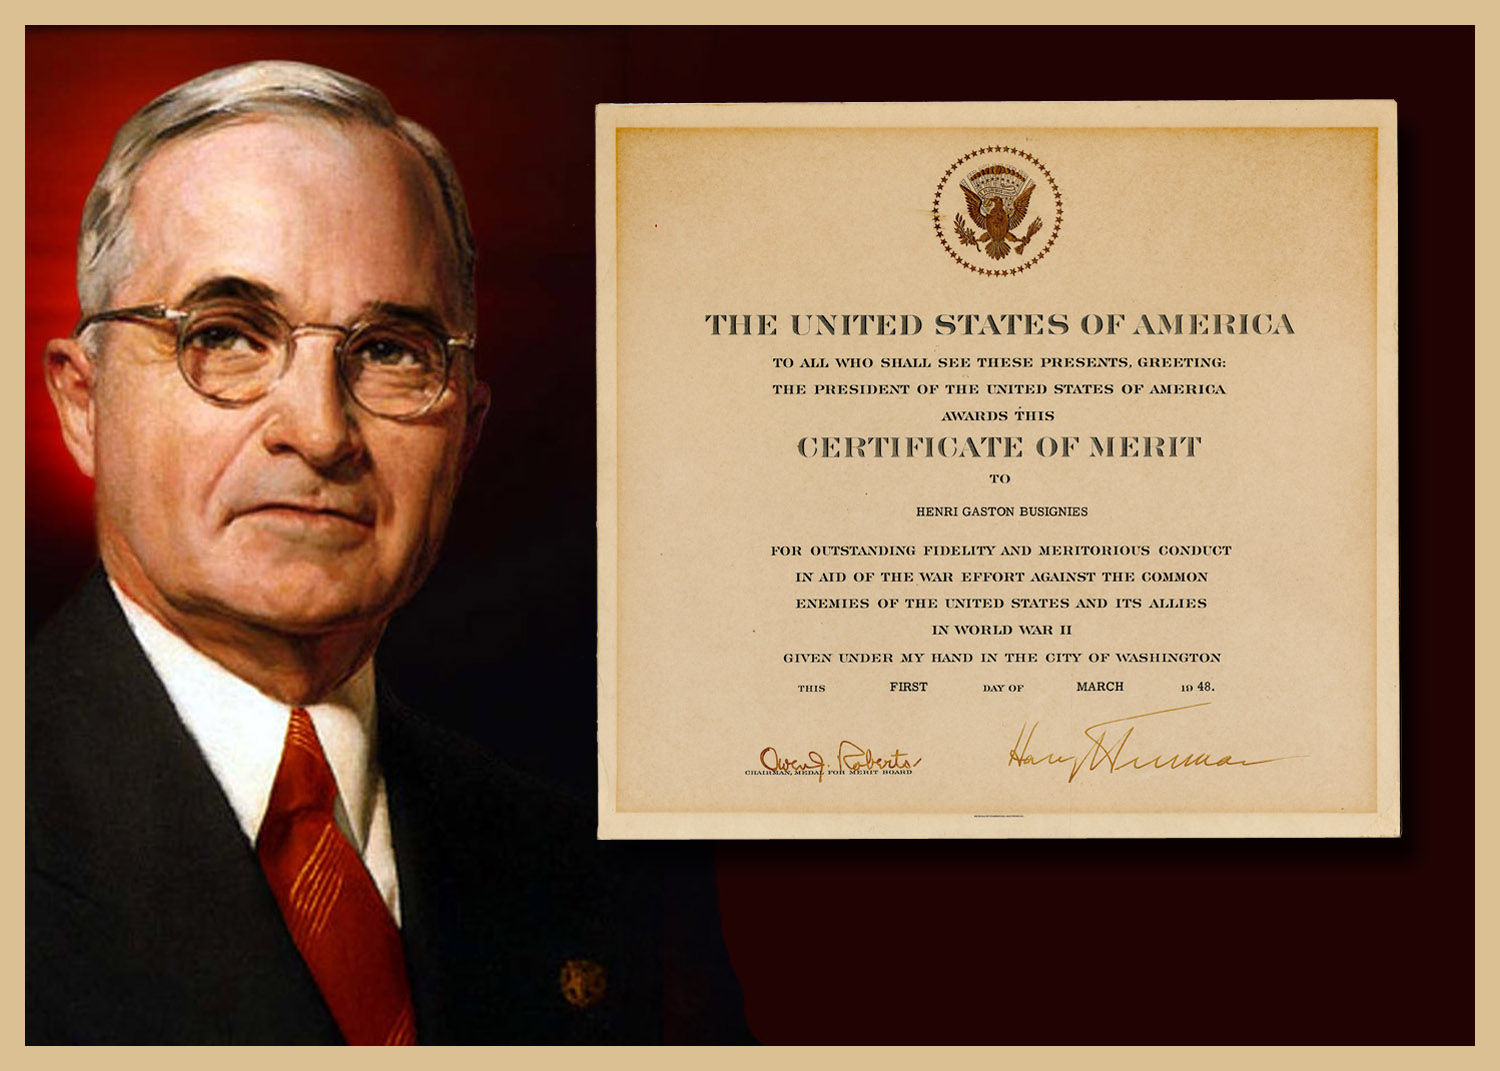 Signed by President Truman